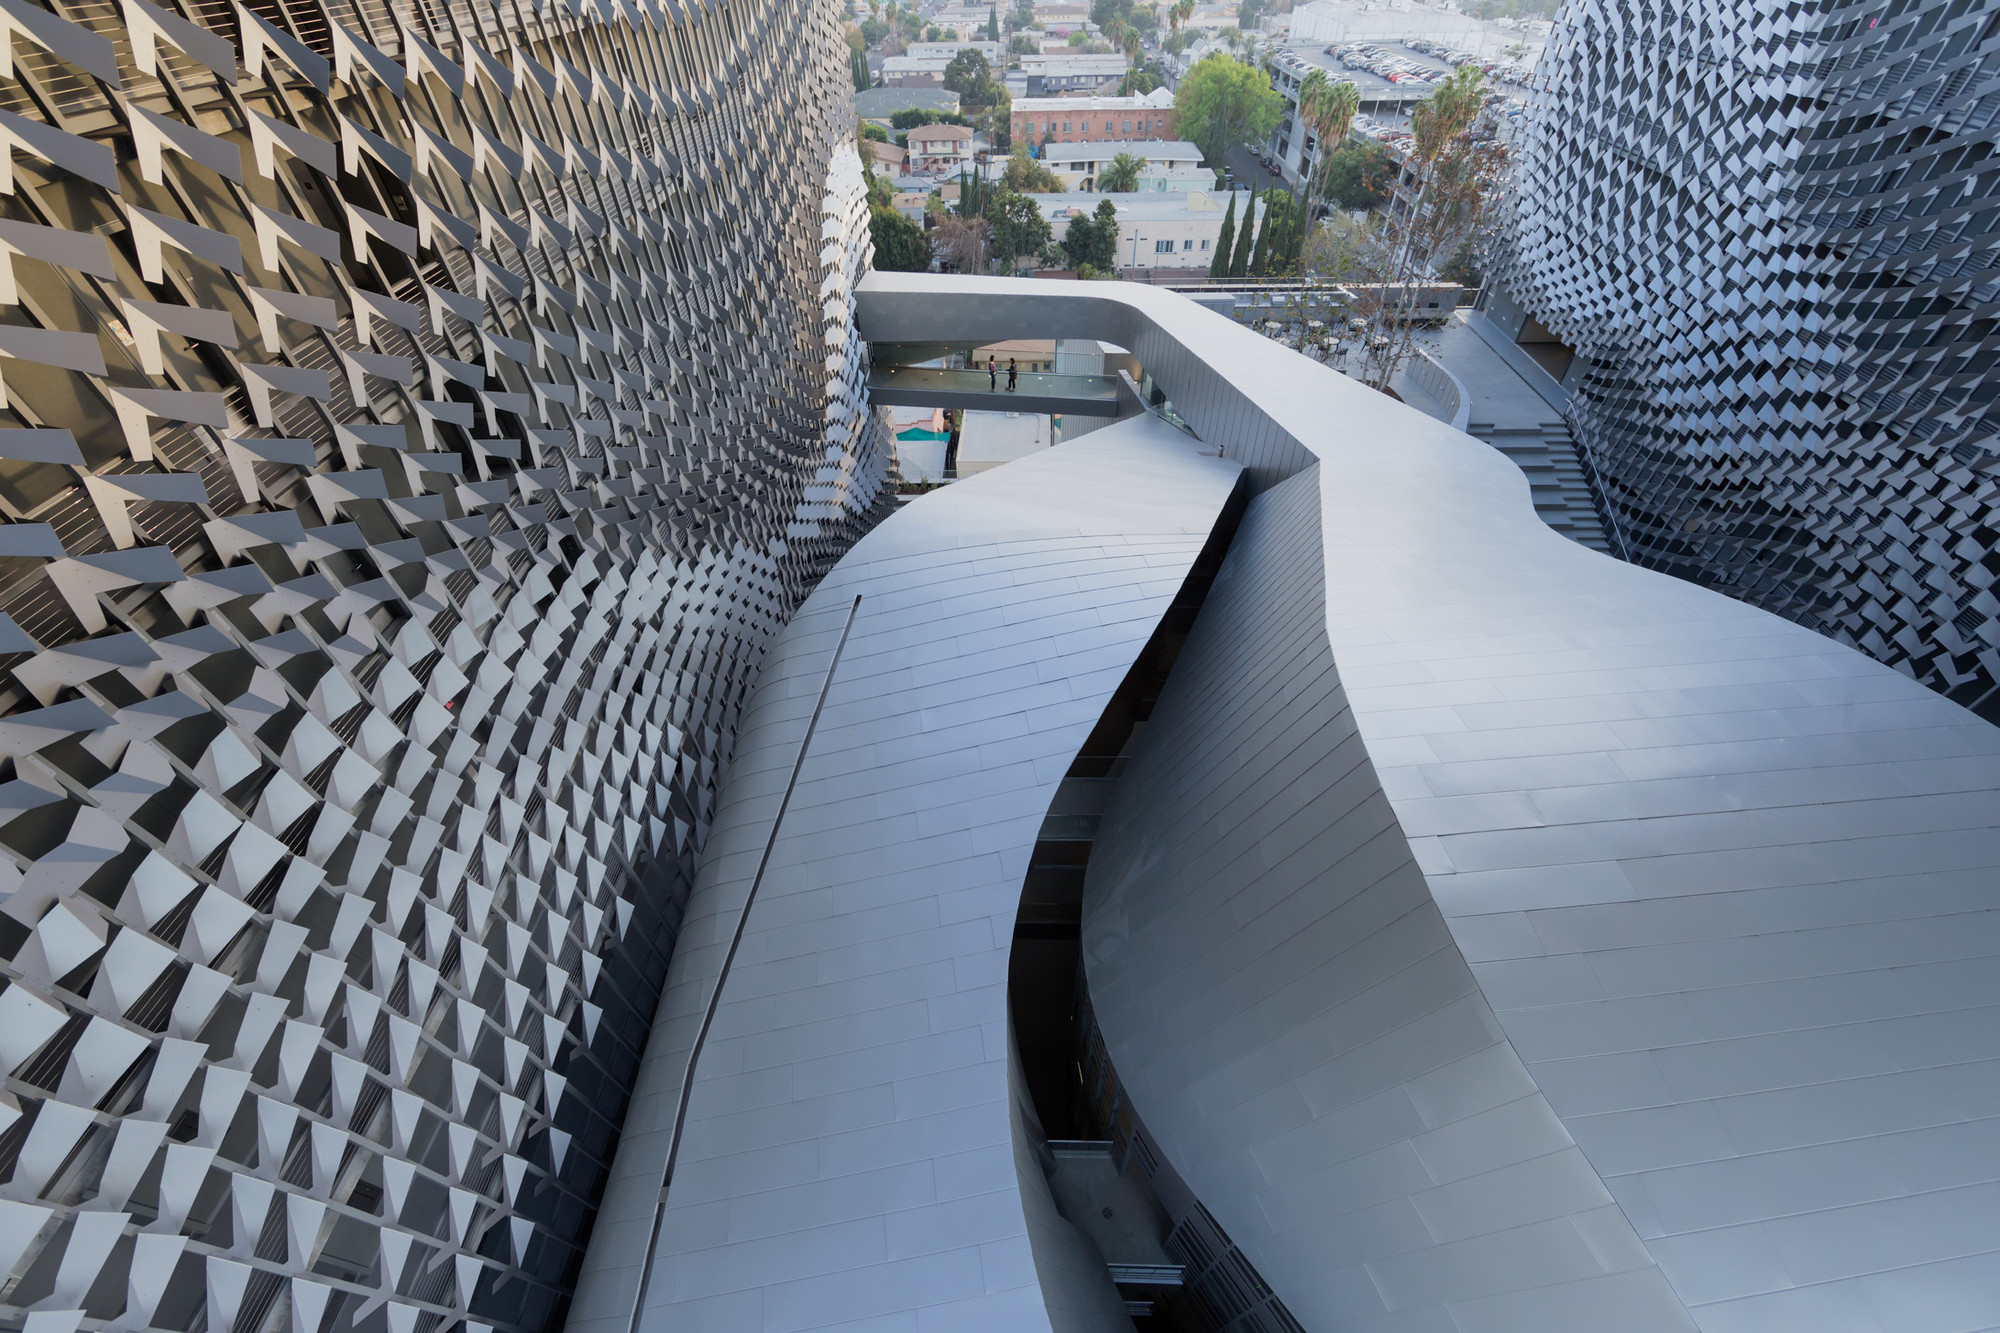 Emerson College Los Angeles >> Gallery Of Emerson College Los Angeles Morphosis Architects 9